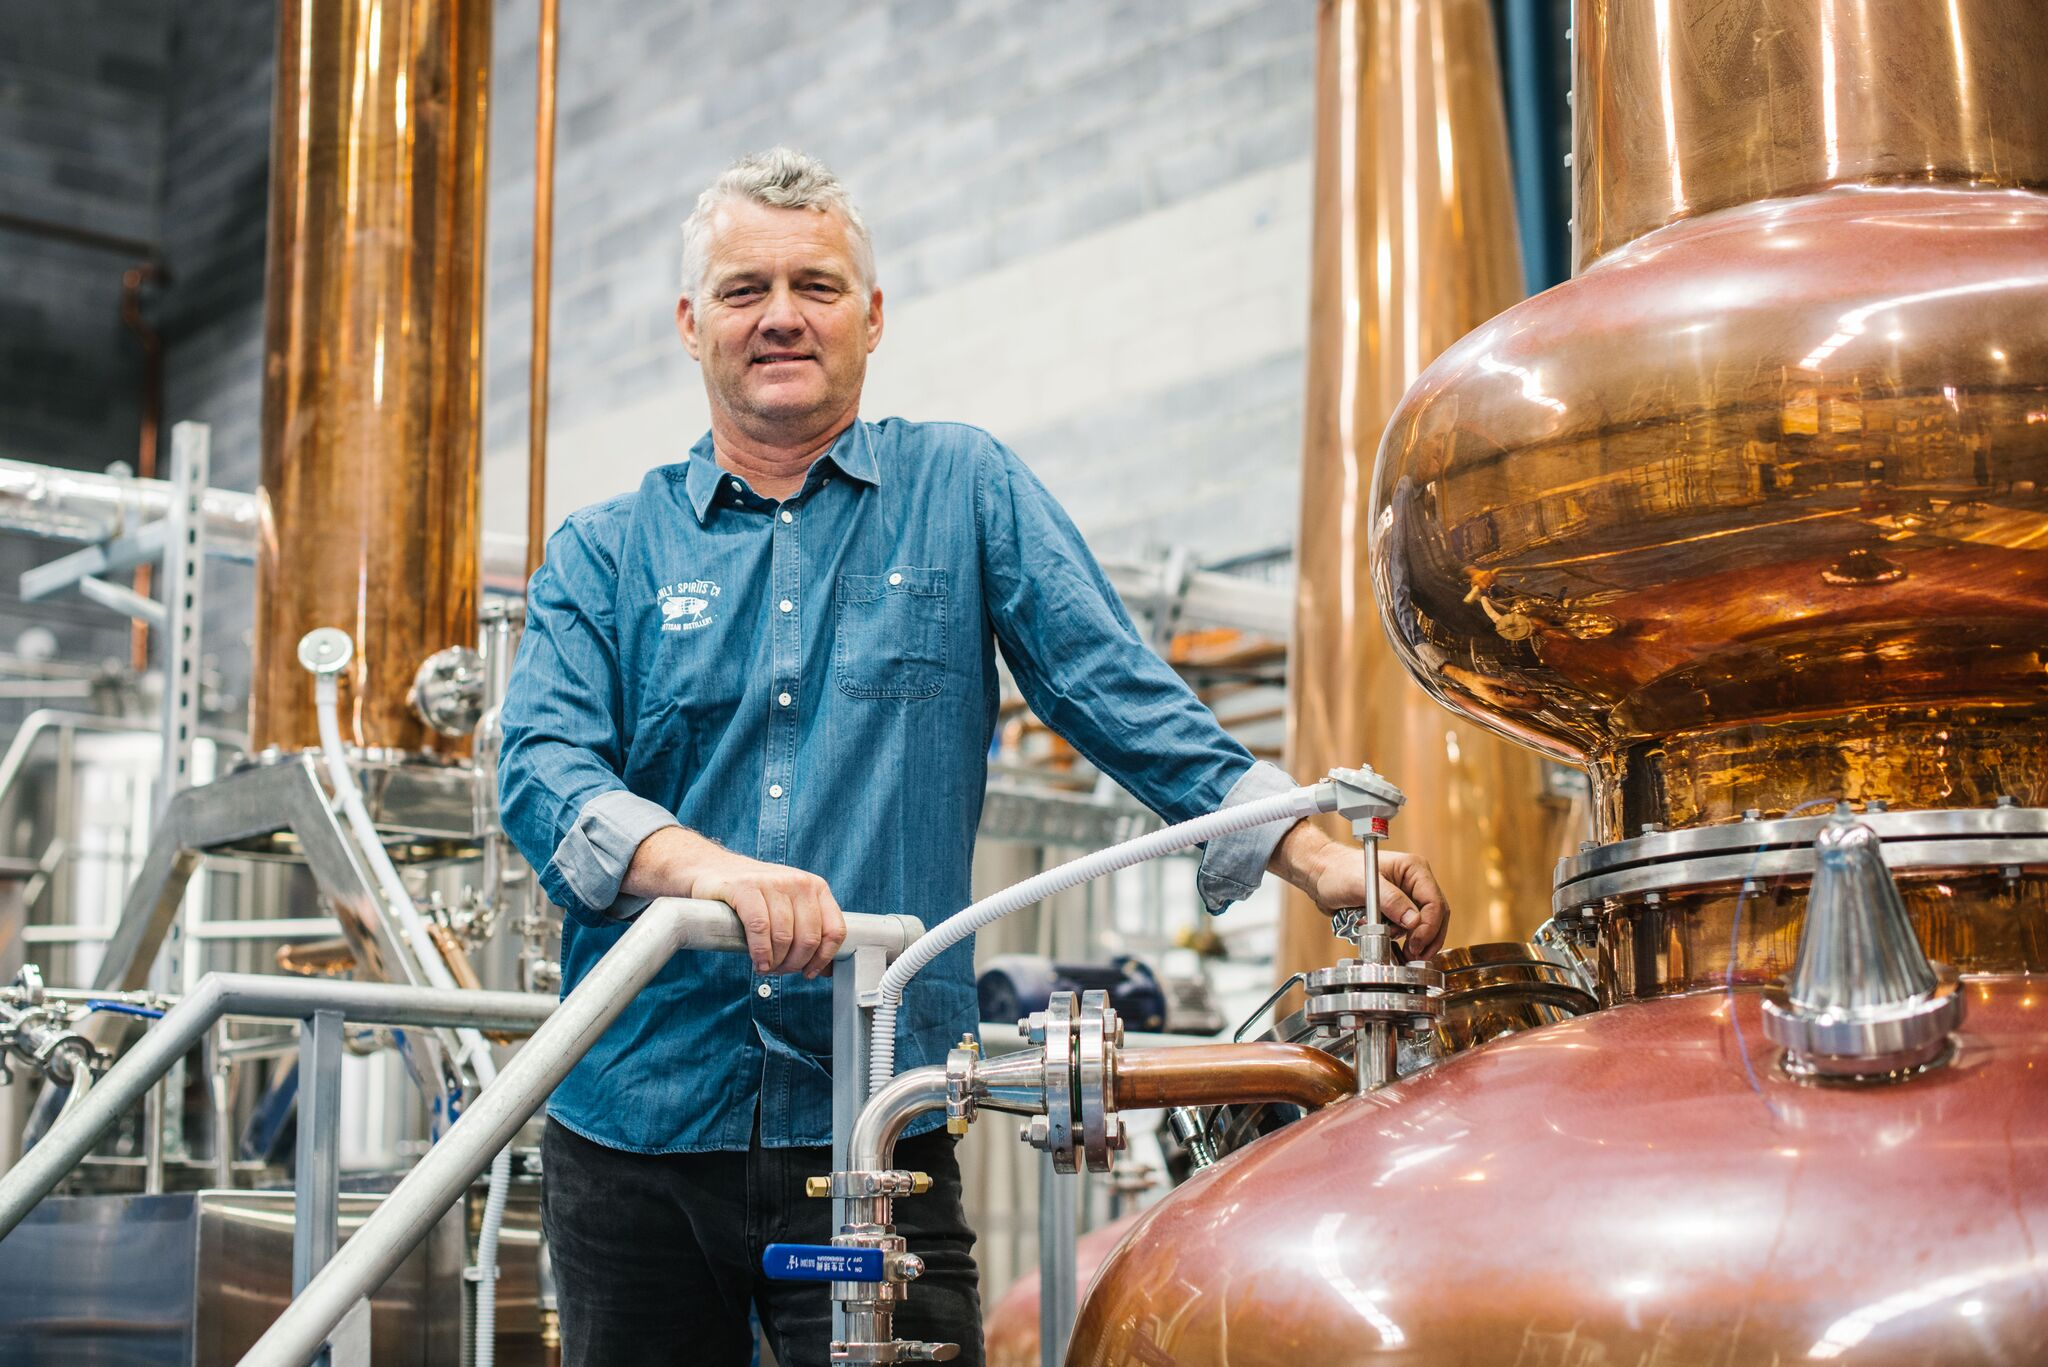 David Whittaker, Manly Spirits Co Founder and Director